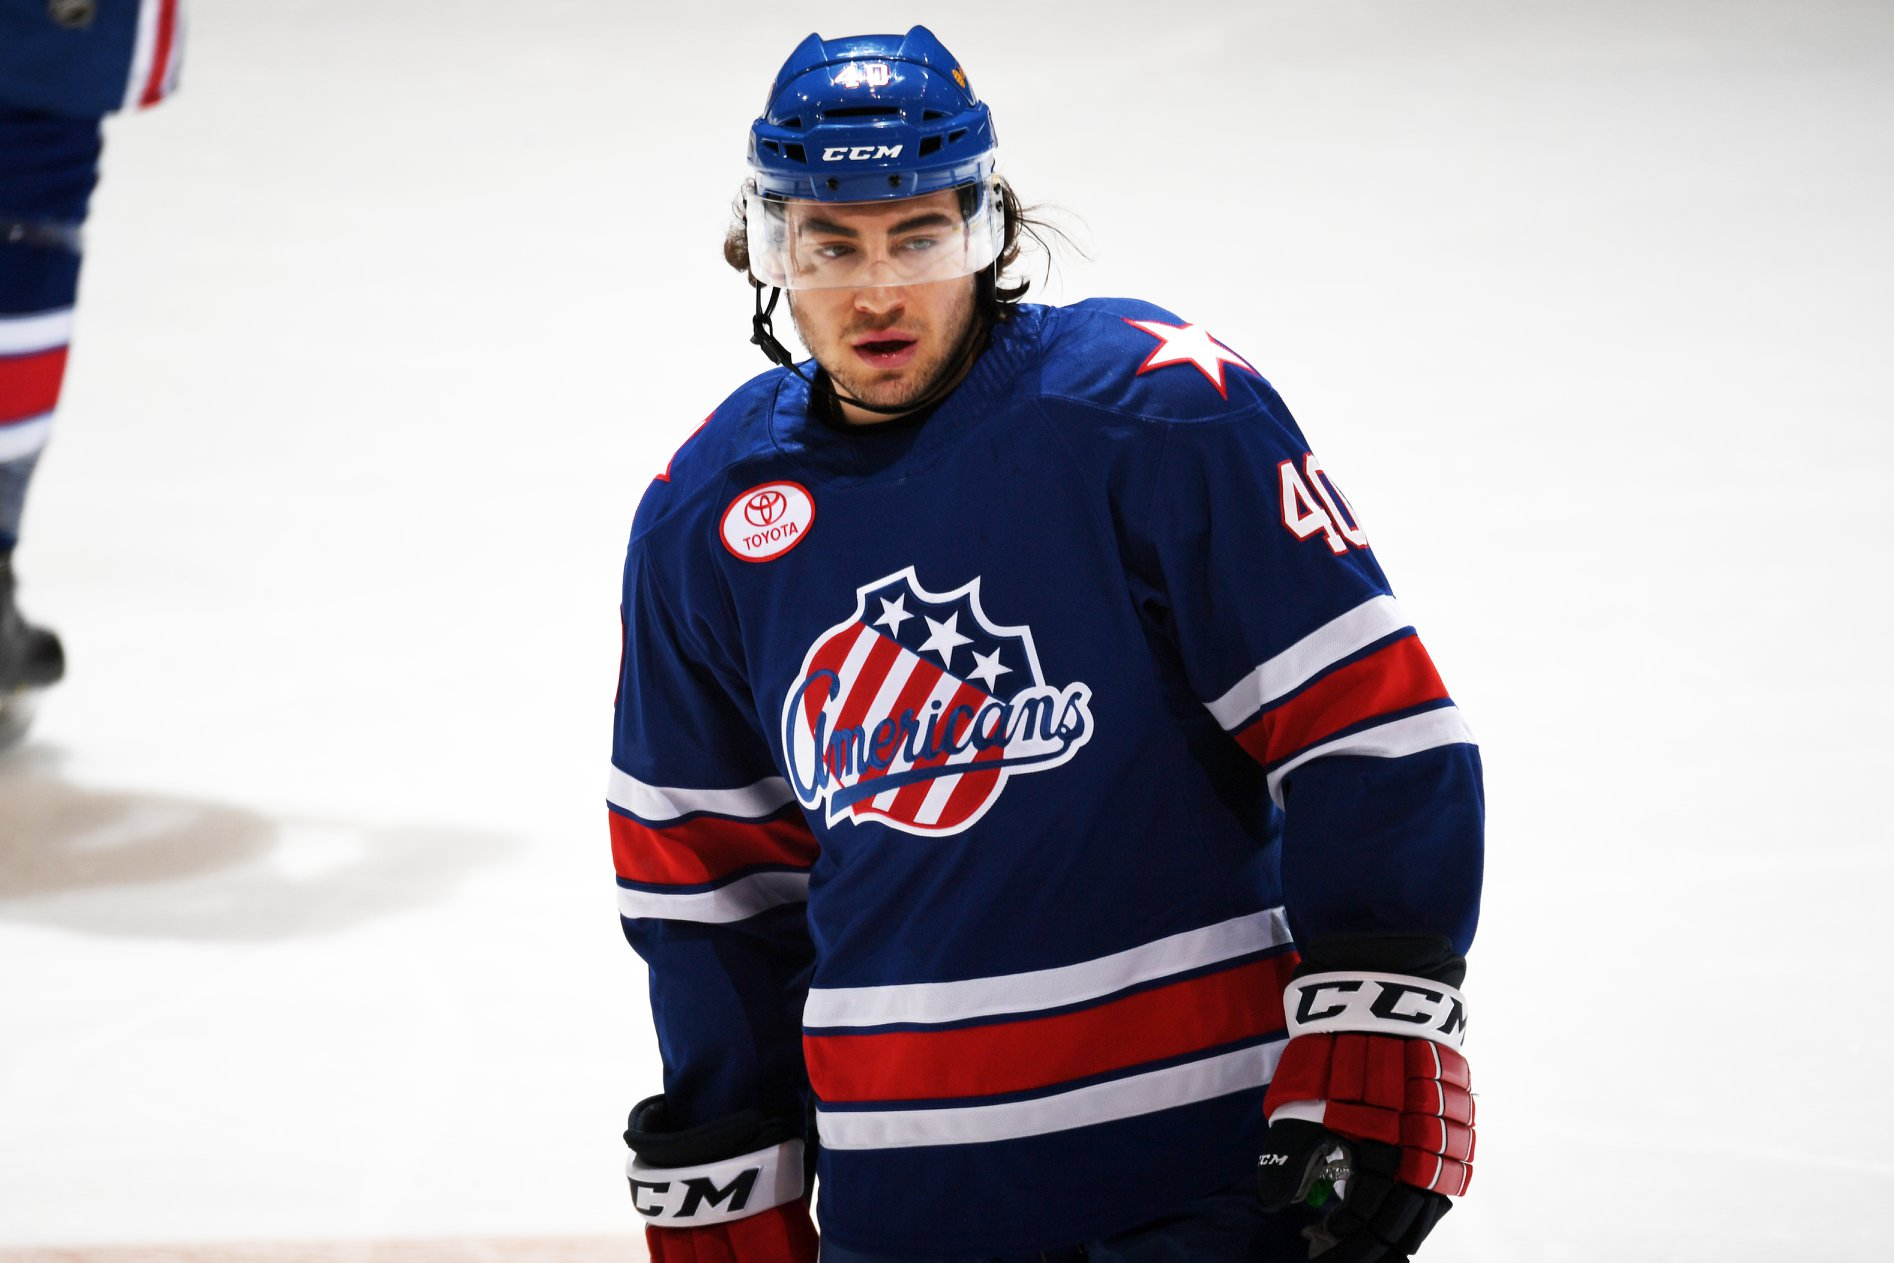 Preview: Amerks New Years Eve Game in Utica